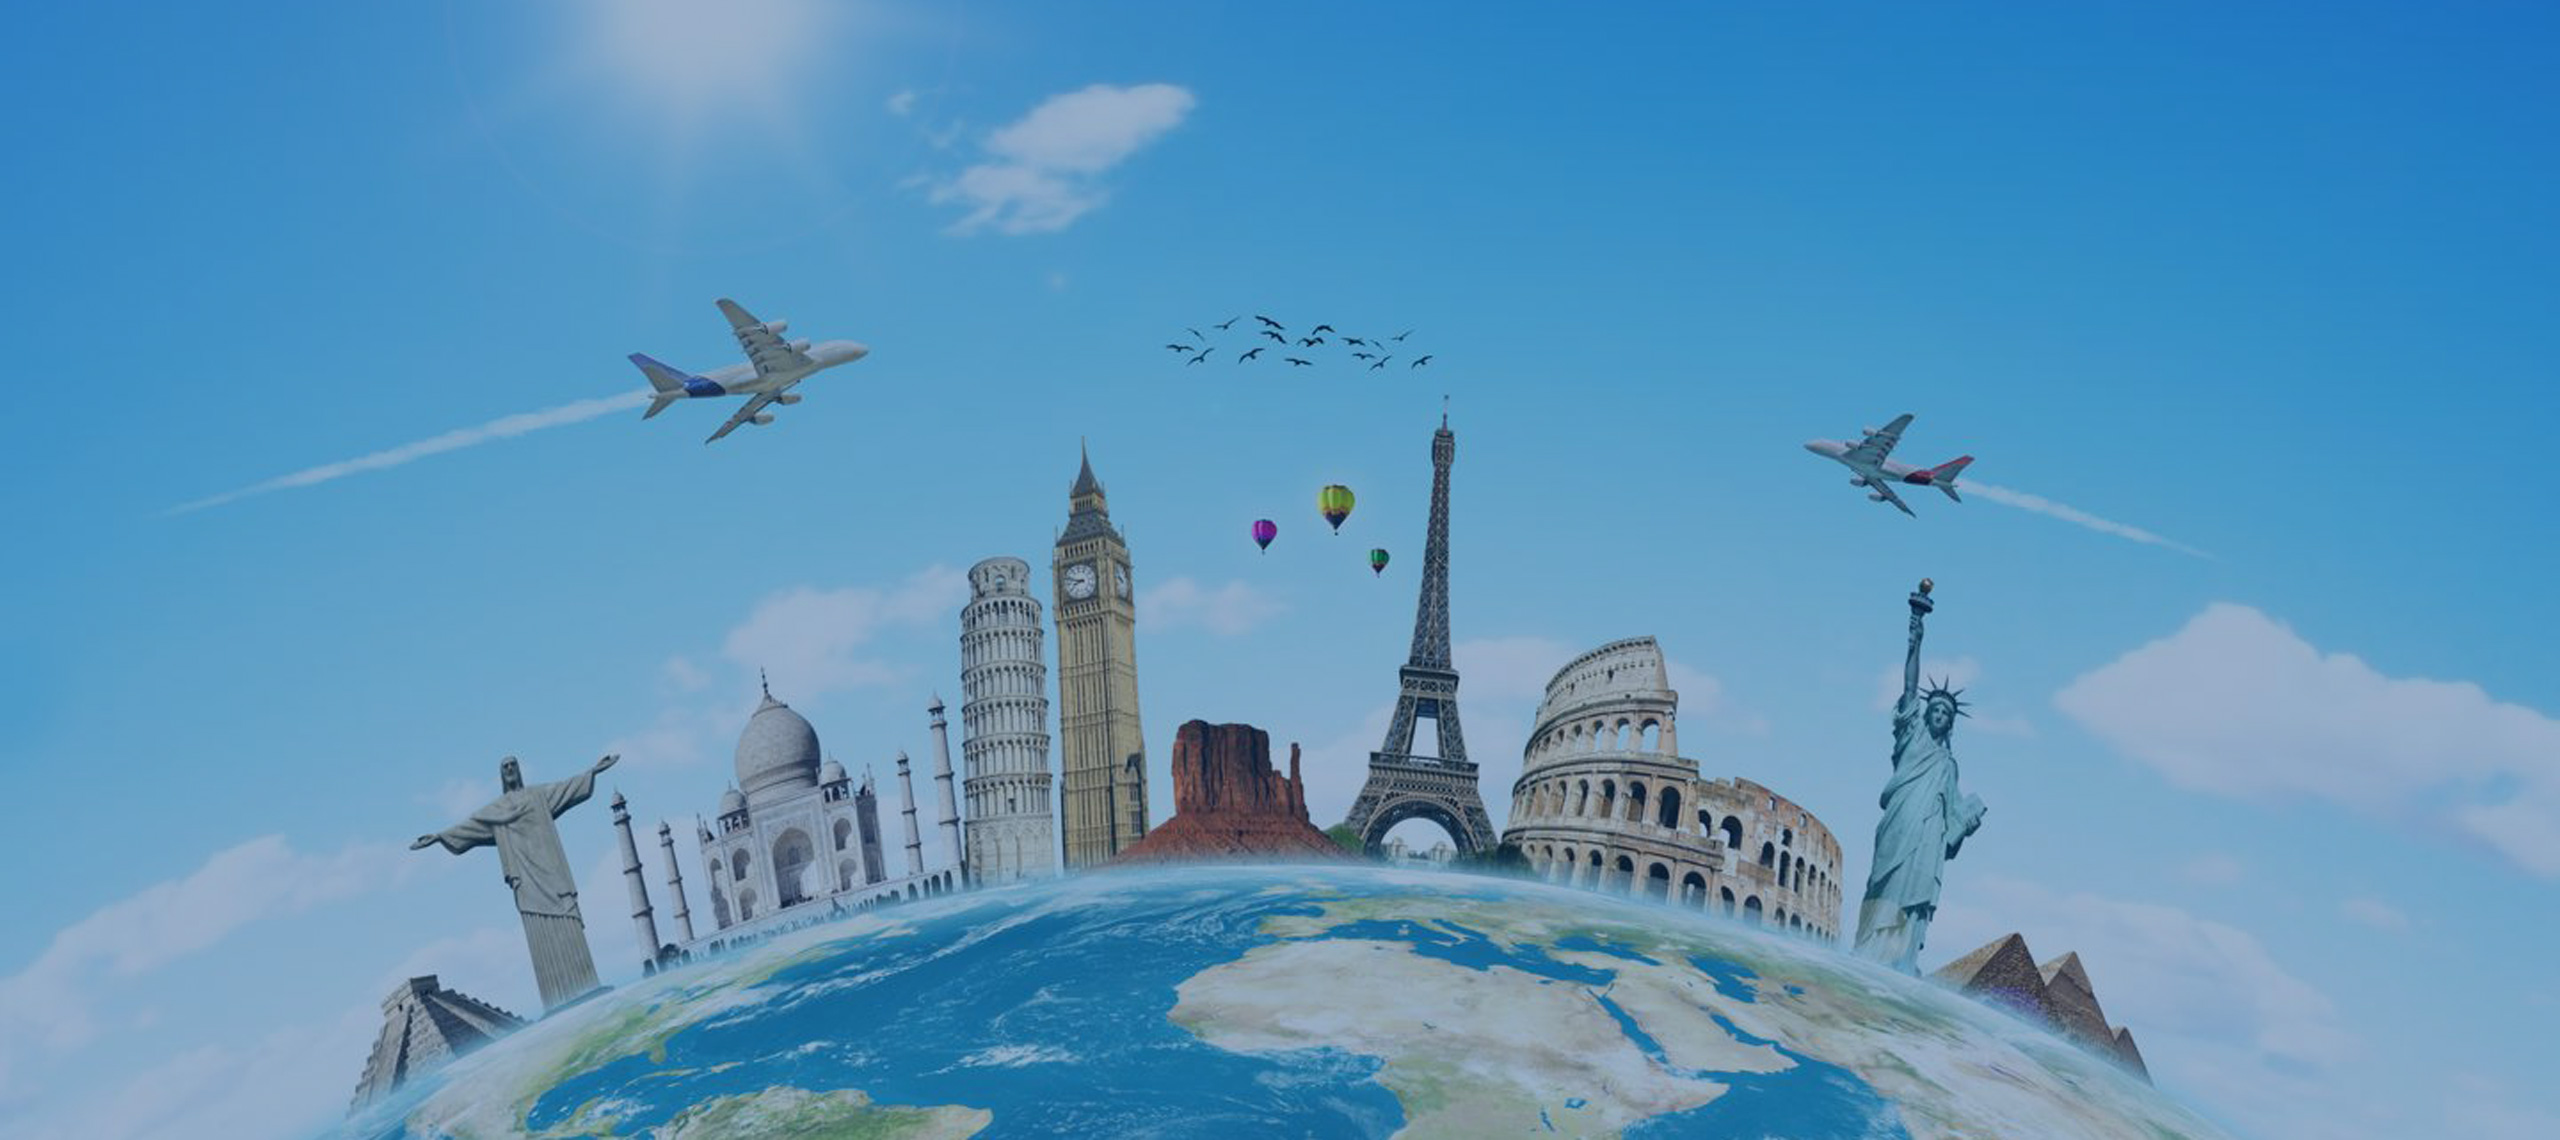 DESTINATIONS MANCHESTER 2015 - The Holiday and Travel Show